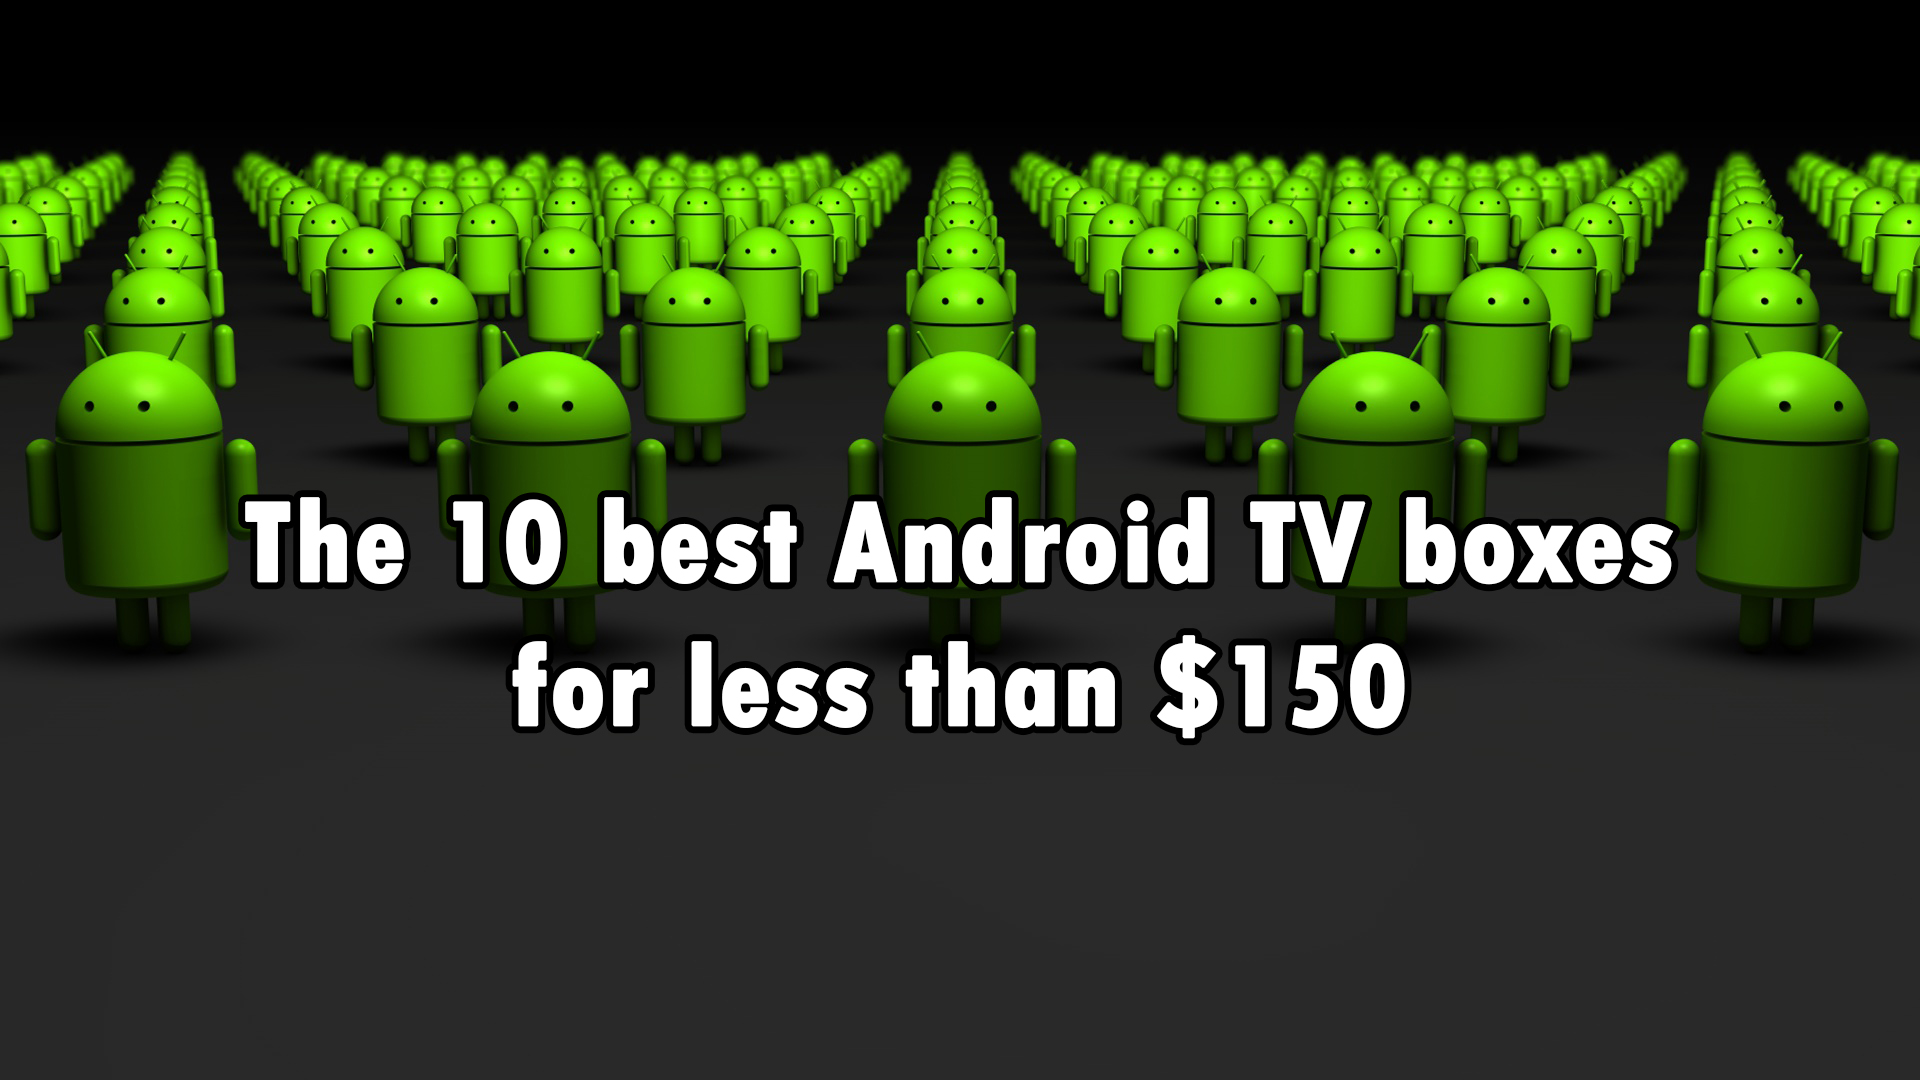 Here are the 10 best Android TV boxes you can buy under $150?